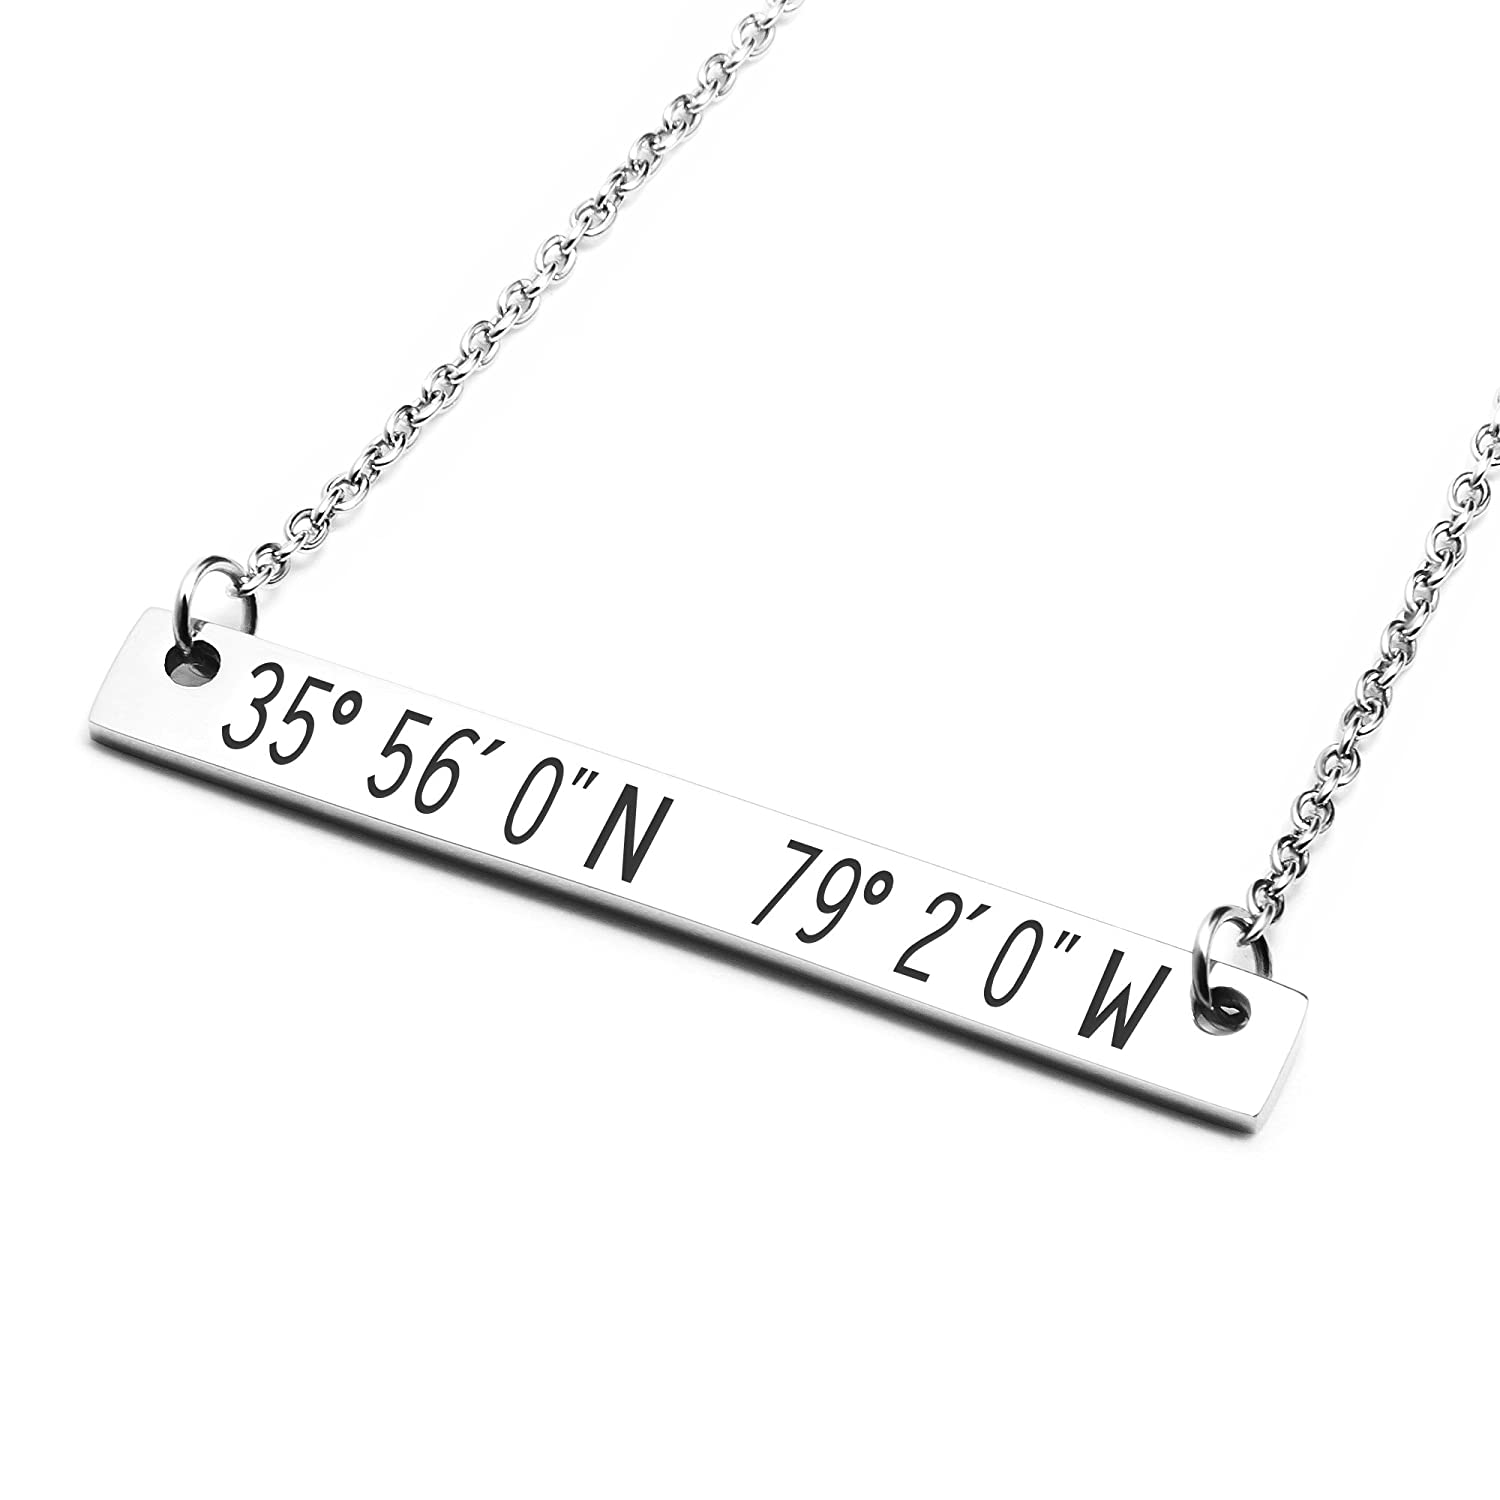 Amazon States Coordinates Bar Necklace 16x16 In Silver Personalized Birthday Gift For Girlfriend Chapel Hill NC Jewelry